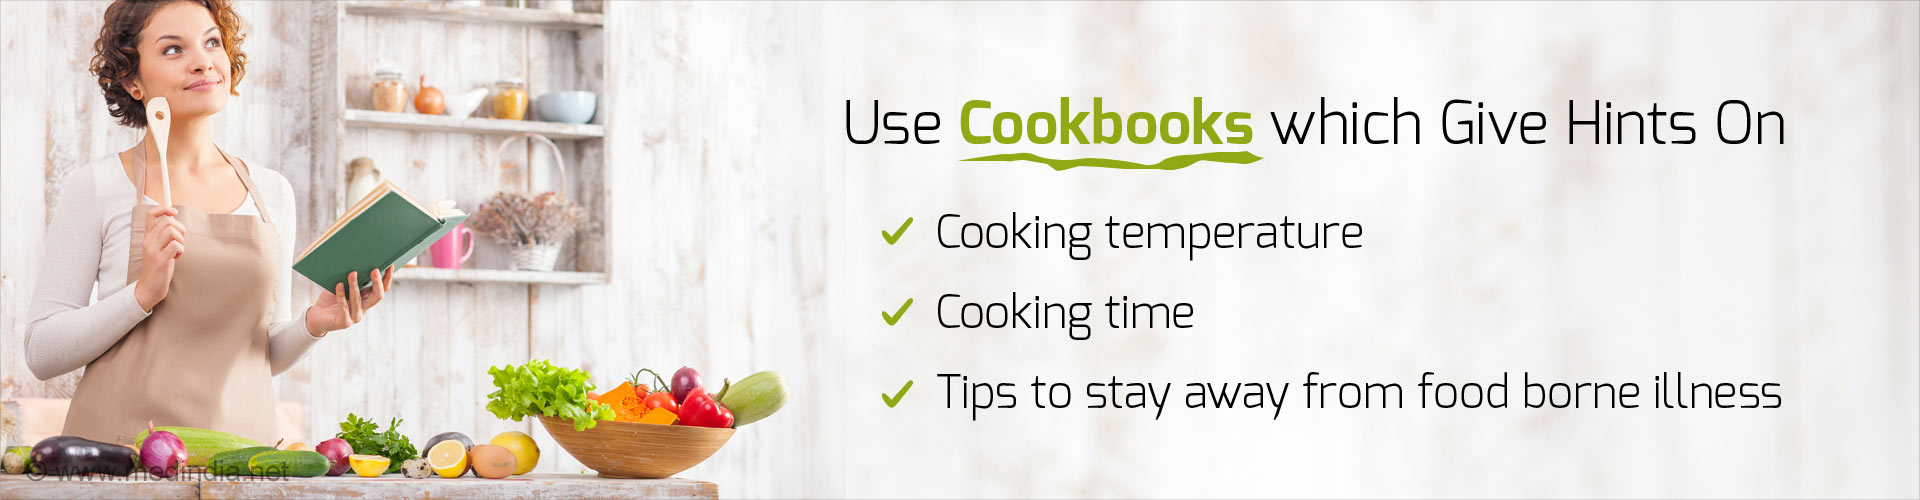 Do Cook Books Help You Prepare Safe Food?